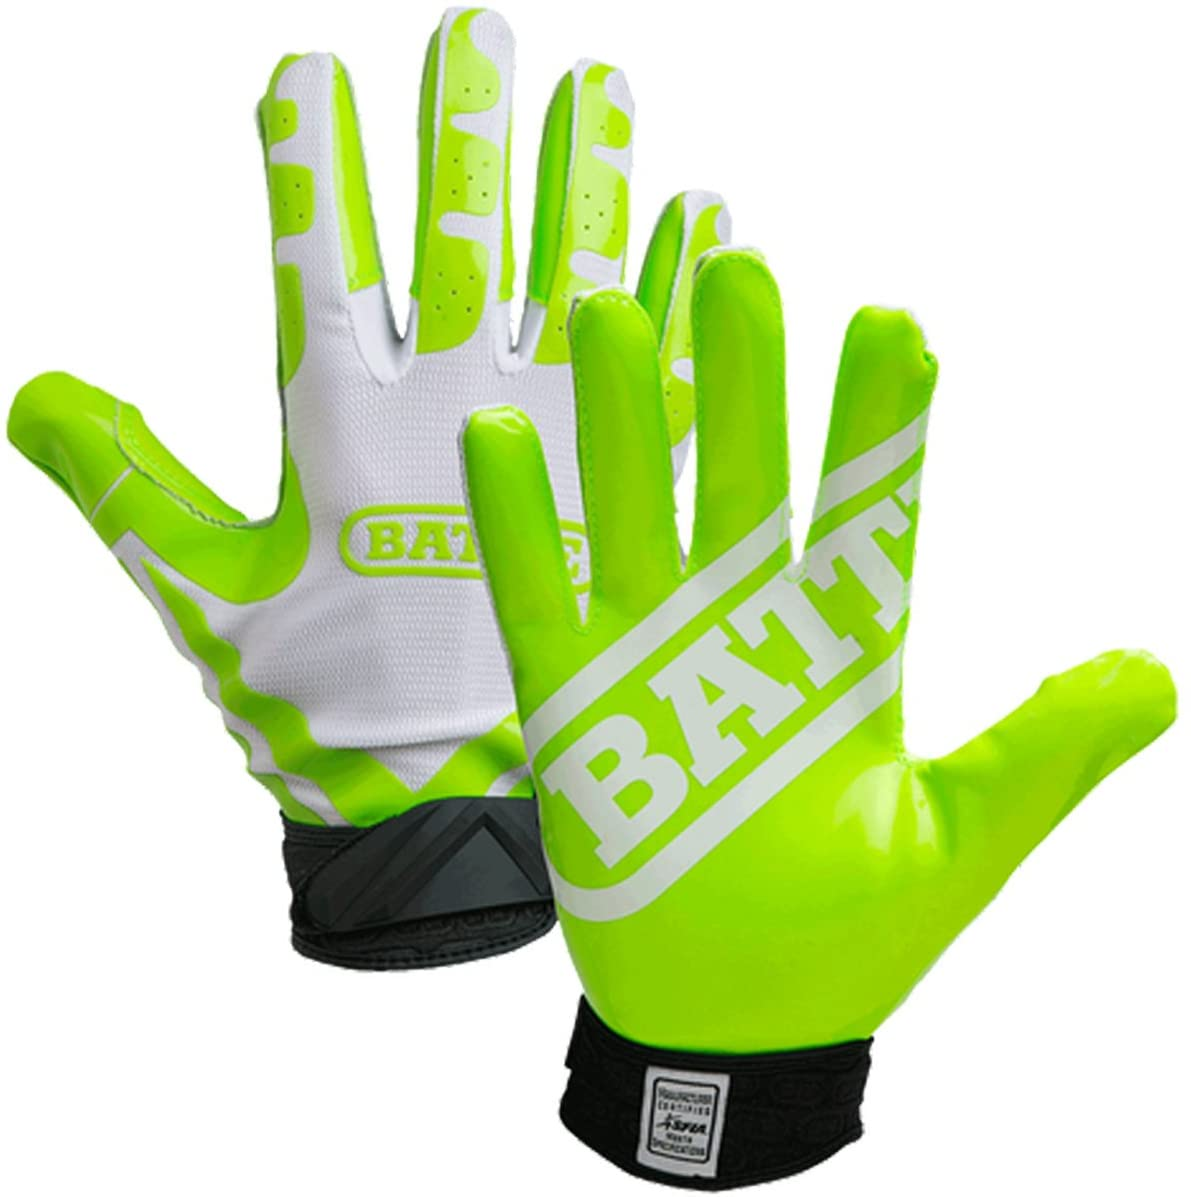 Battle Sports Science Receivers Ultra-Stick Football Gloves - White/Neon Green